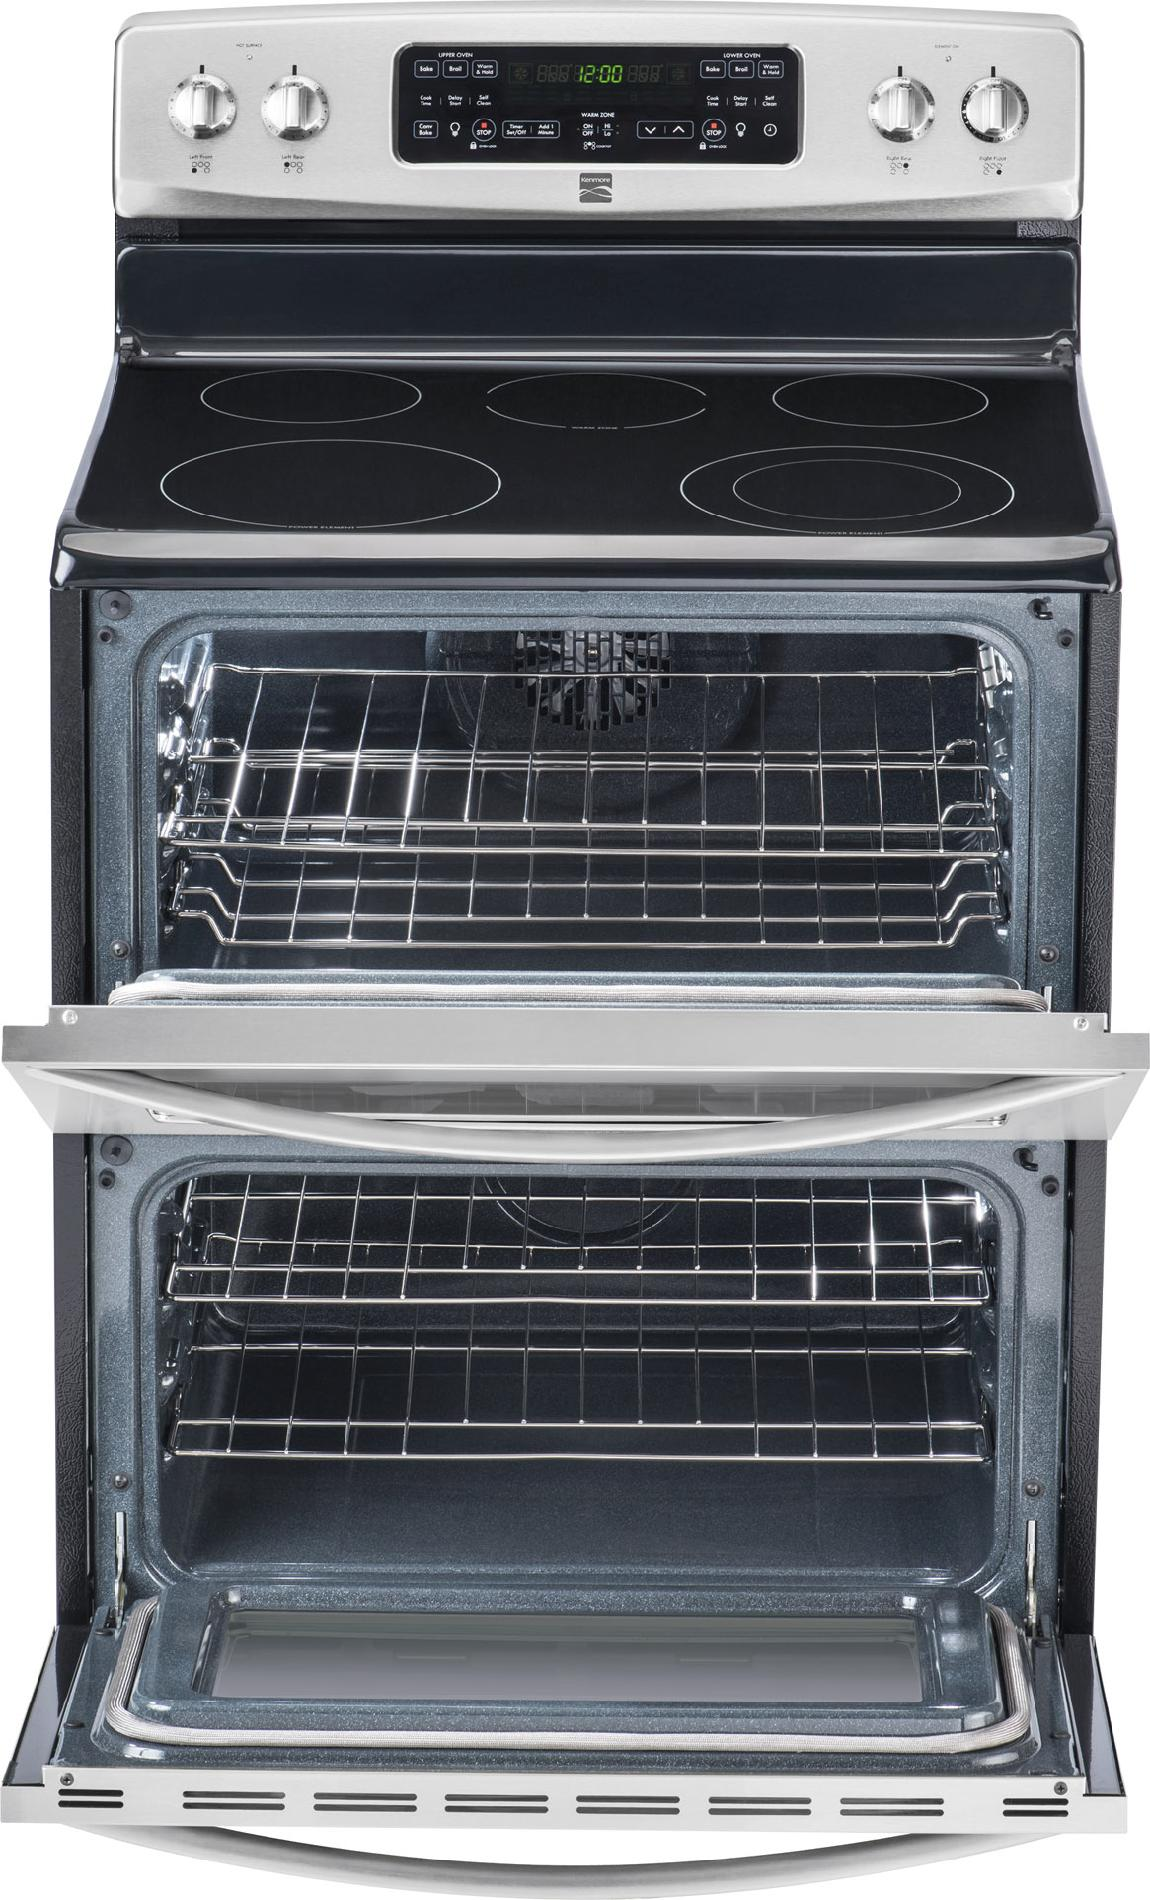 Kenmore 7.0 cu. ft. Double-Oven Electric Range w/ Convection - Stainless Steel